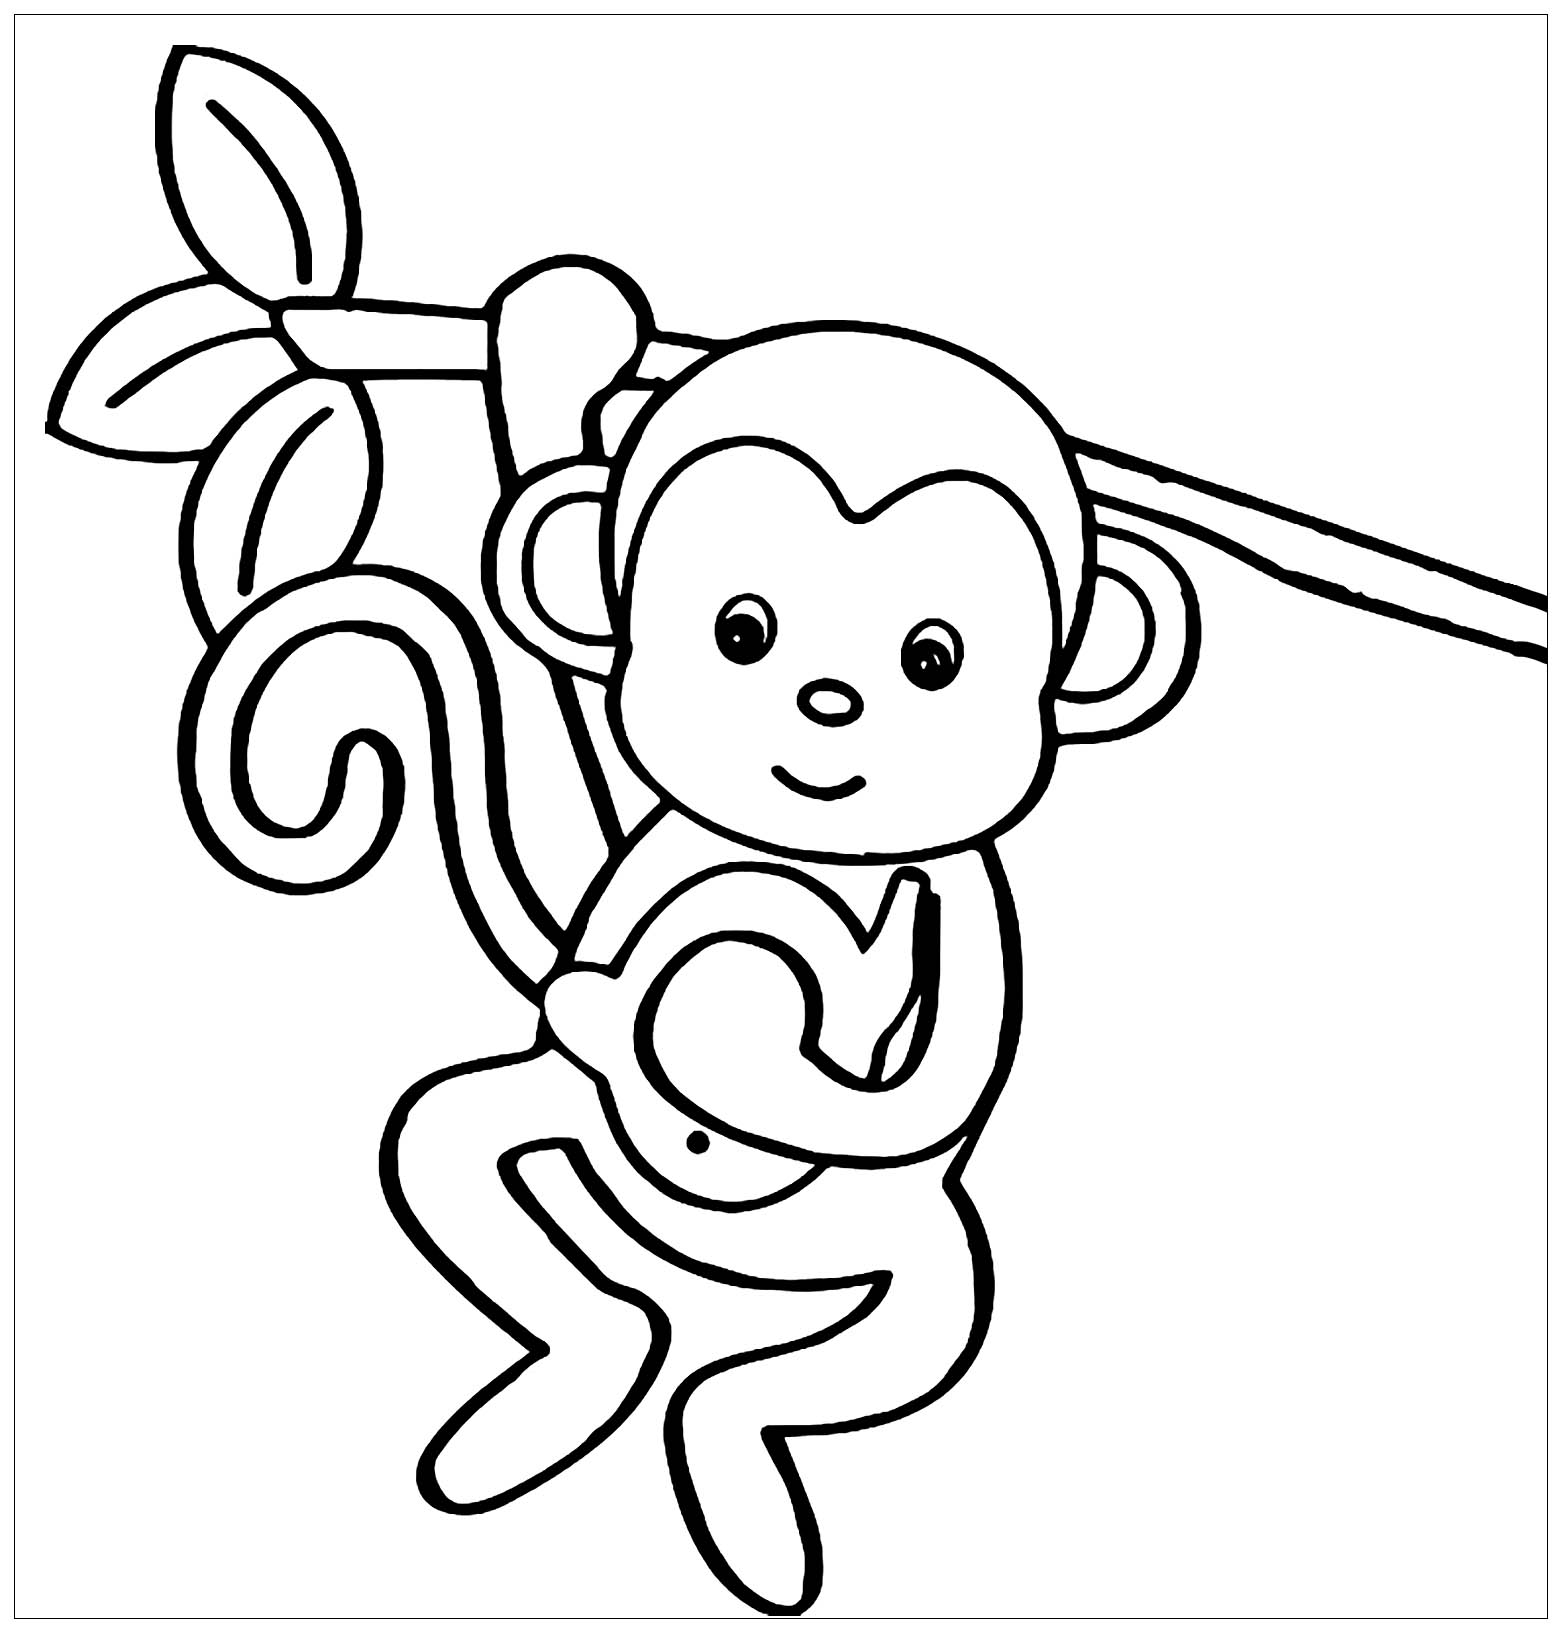 coloring pages of monkey monkey coloring pages coloring of pages monkey